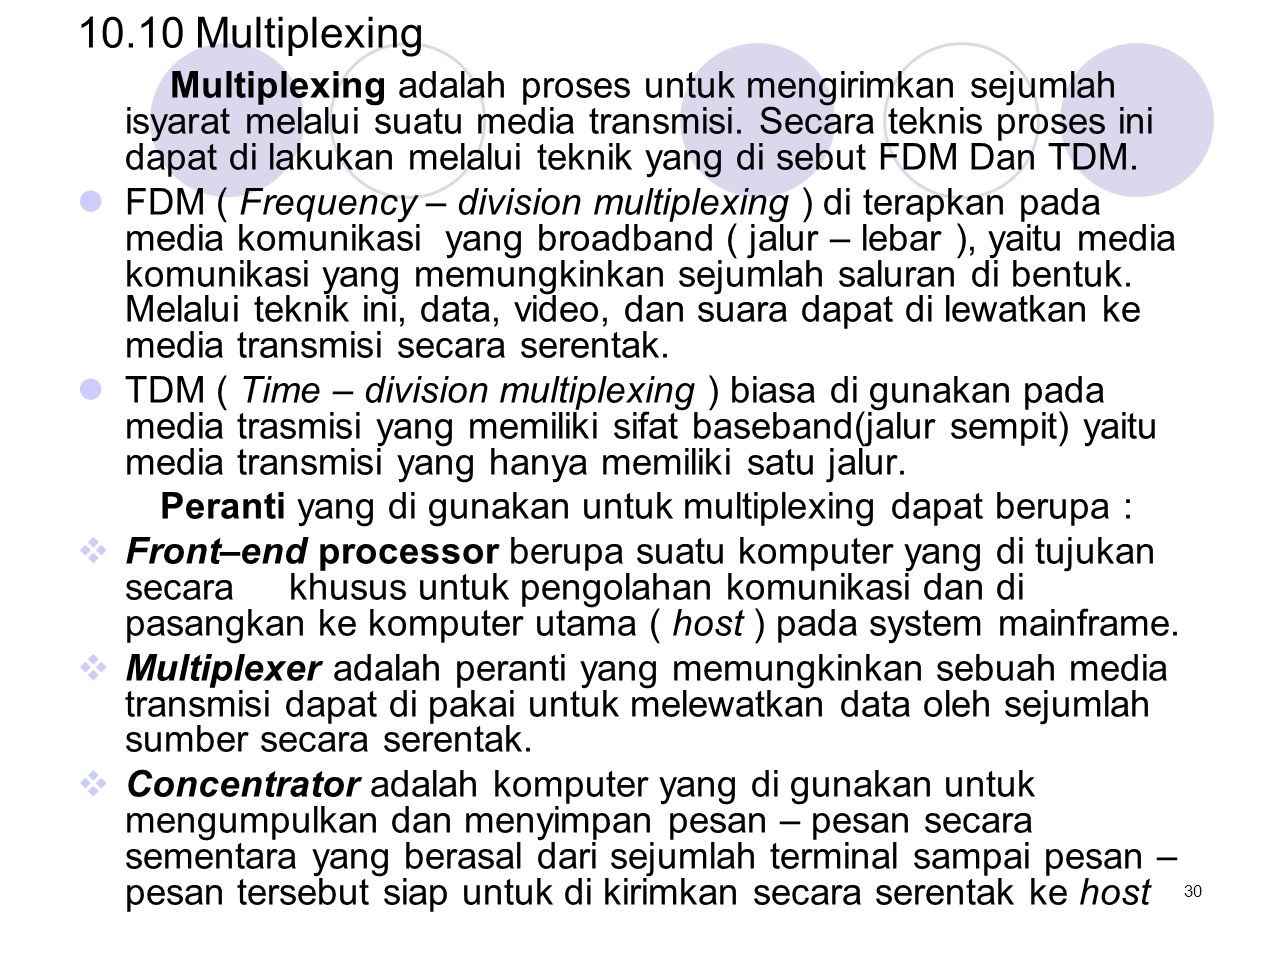 10.10 Multiplexing